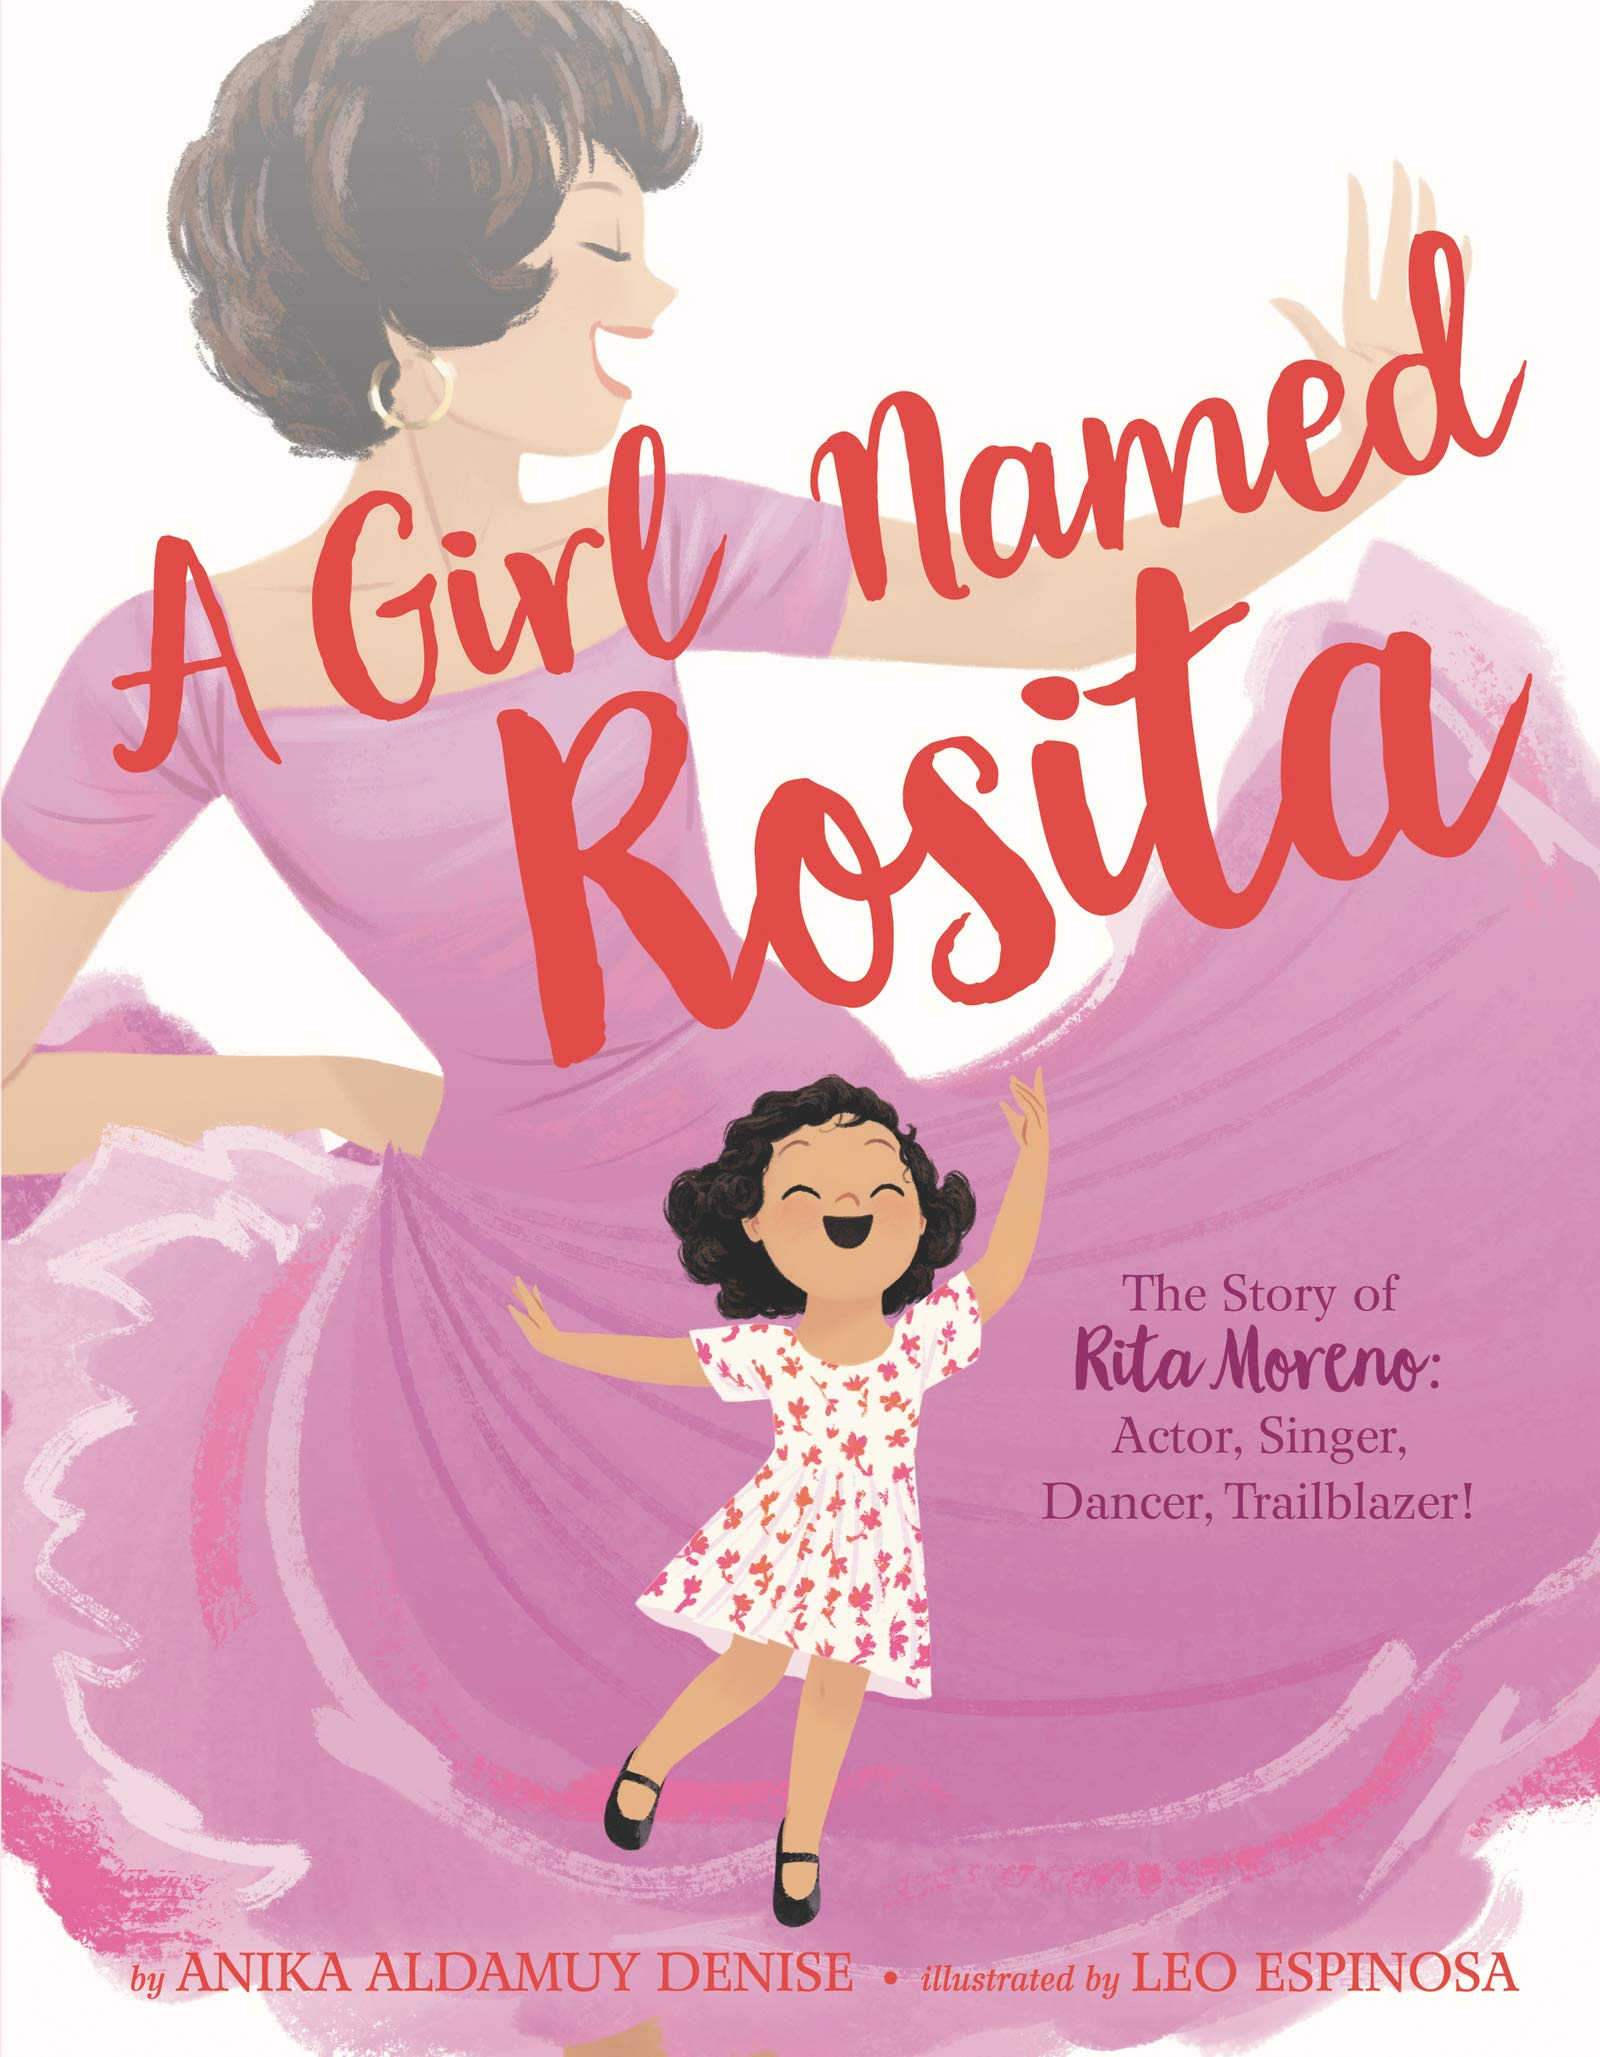 A Girl Named Rosita: The Story of Rita Moreno: Actor, Singer, Dancer, Trailblazer!